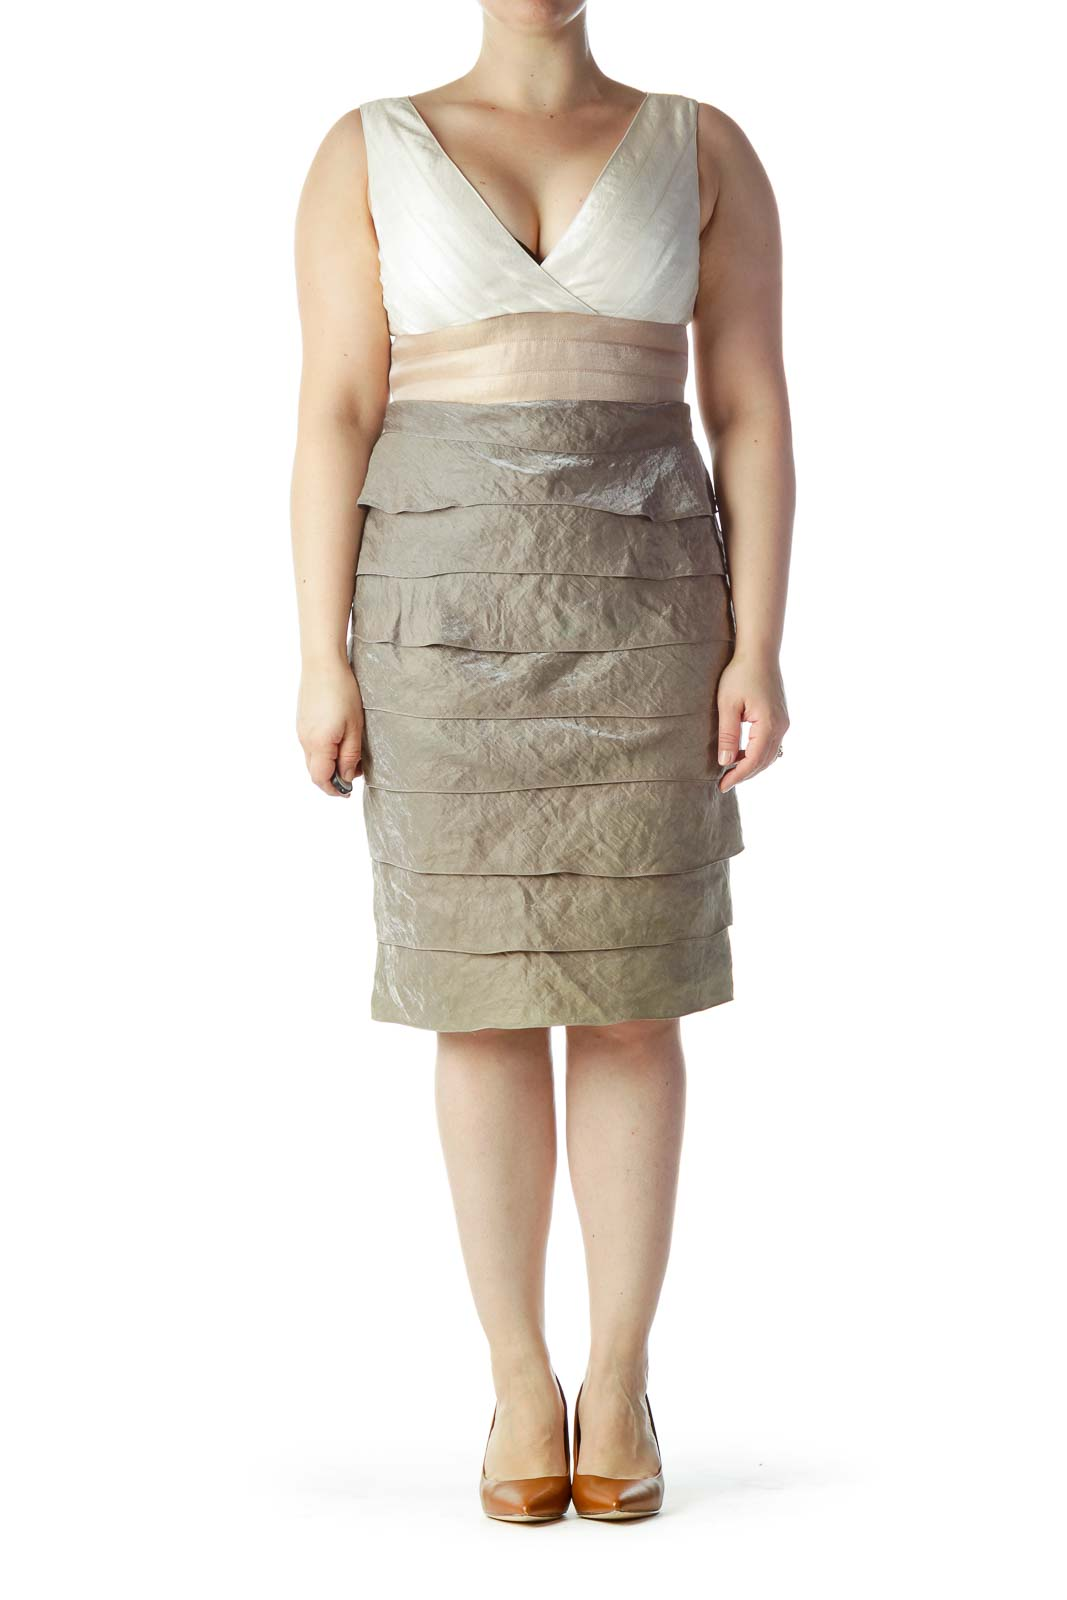 Beige Cream Gray Ruffled Cocktail Dress